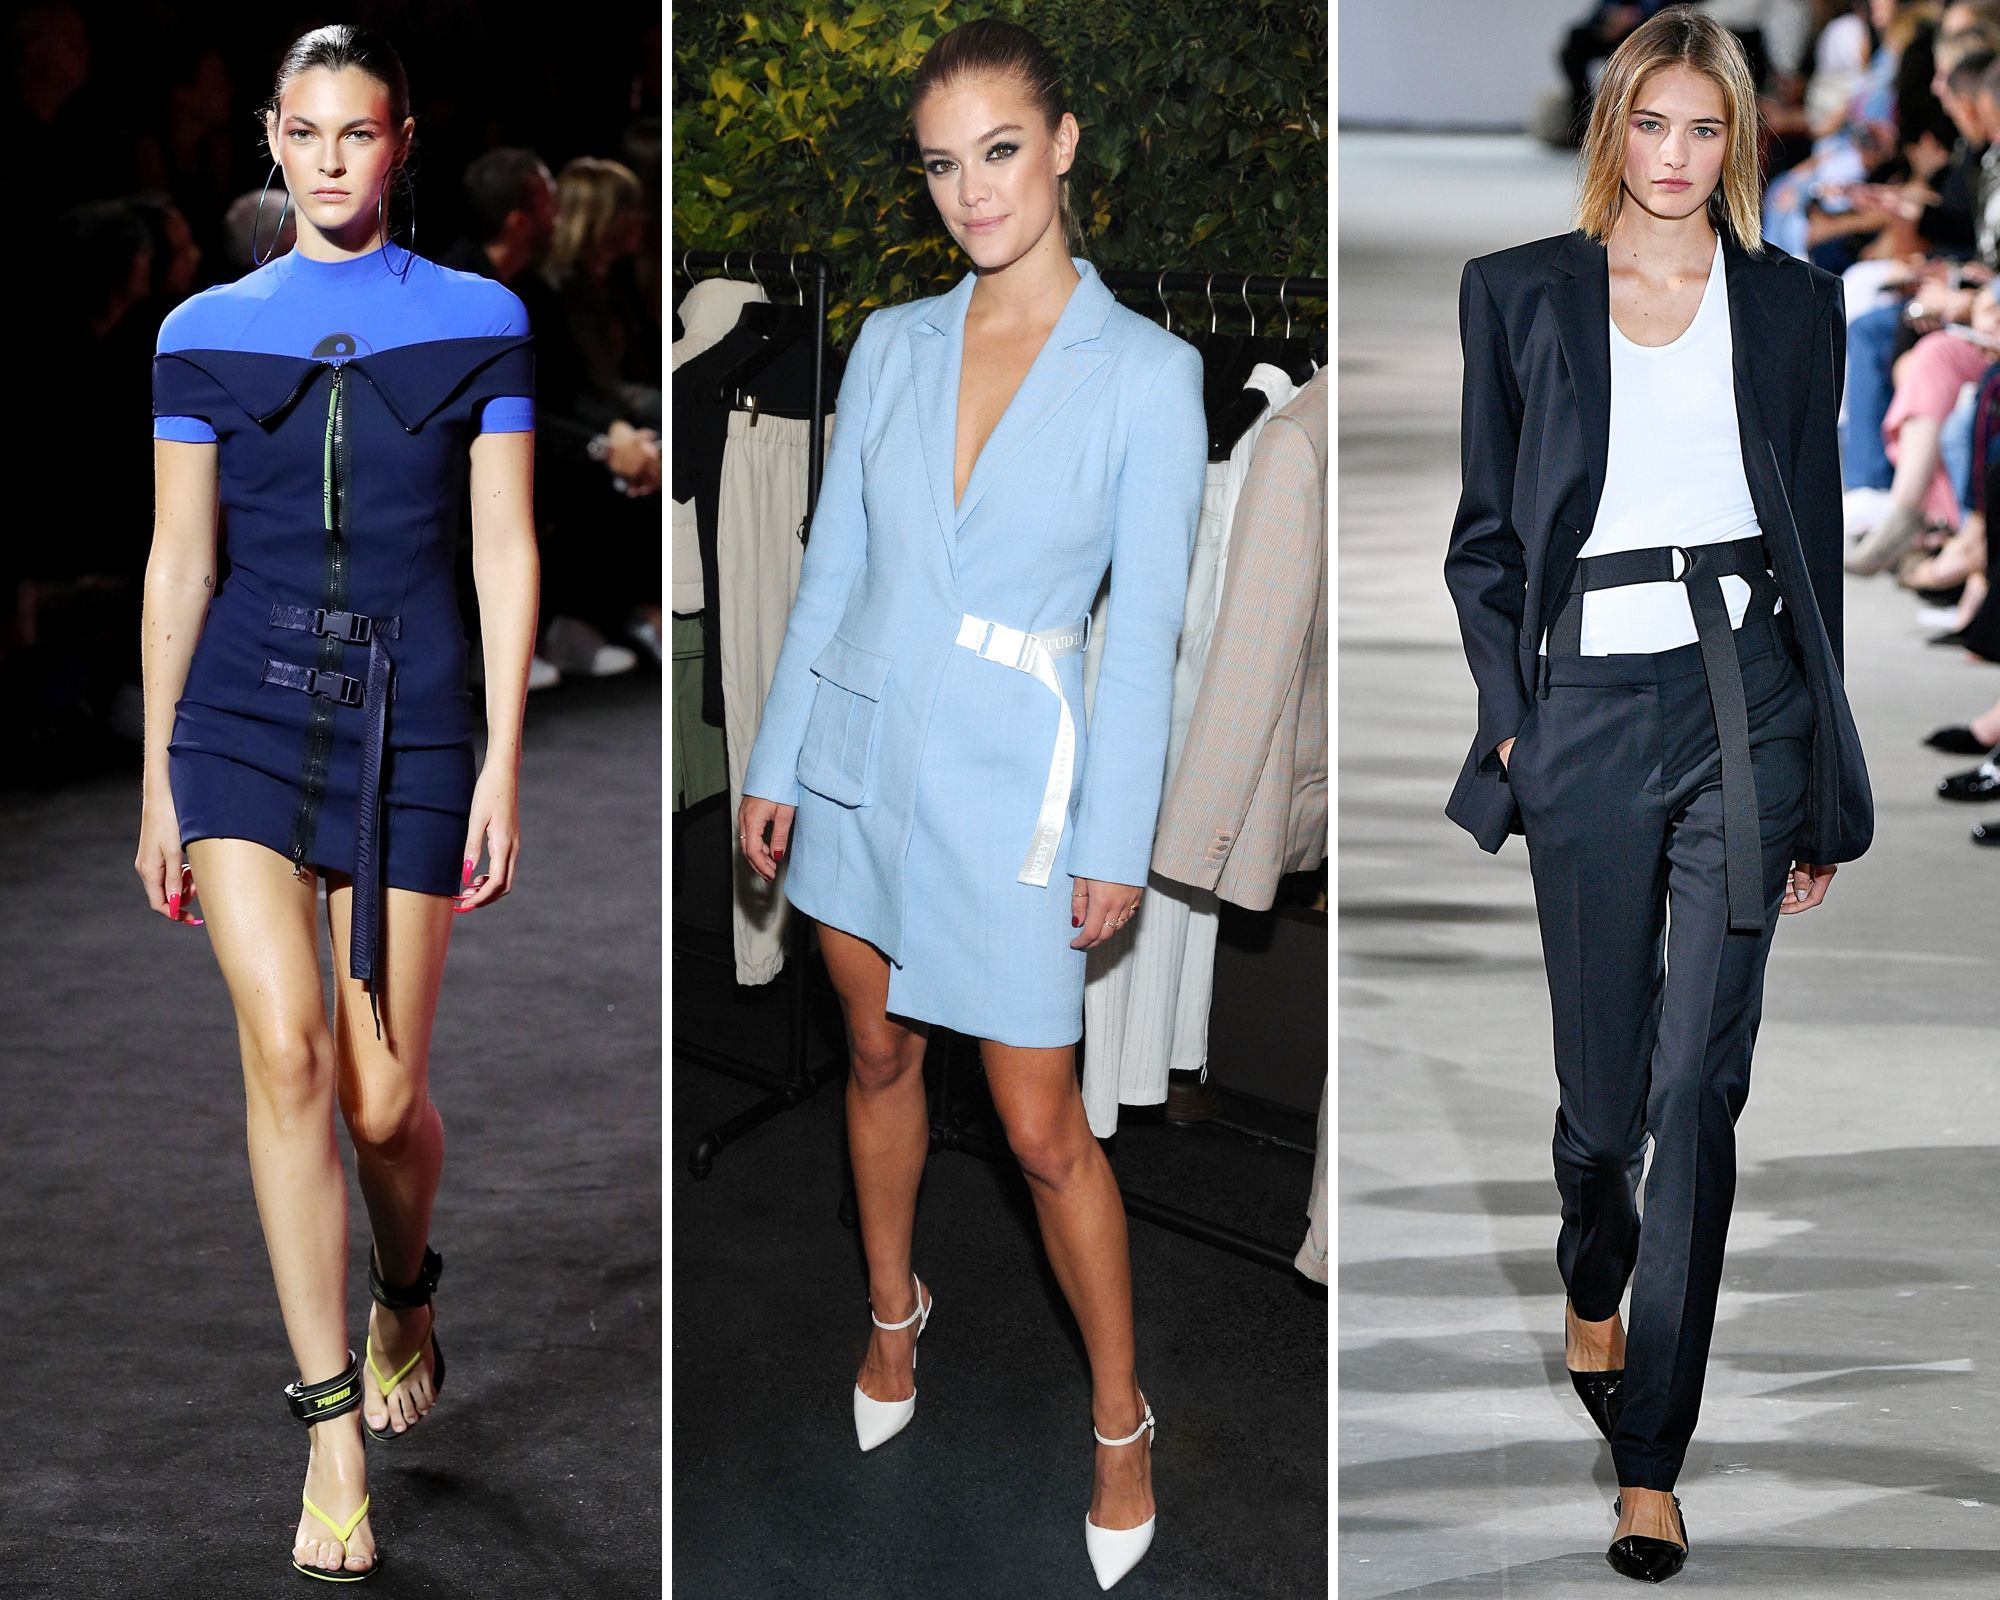 Fashion Trends We Re Looking Forward To In 2018 Fashion Tips